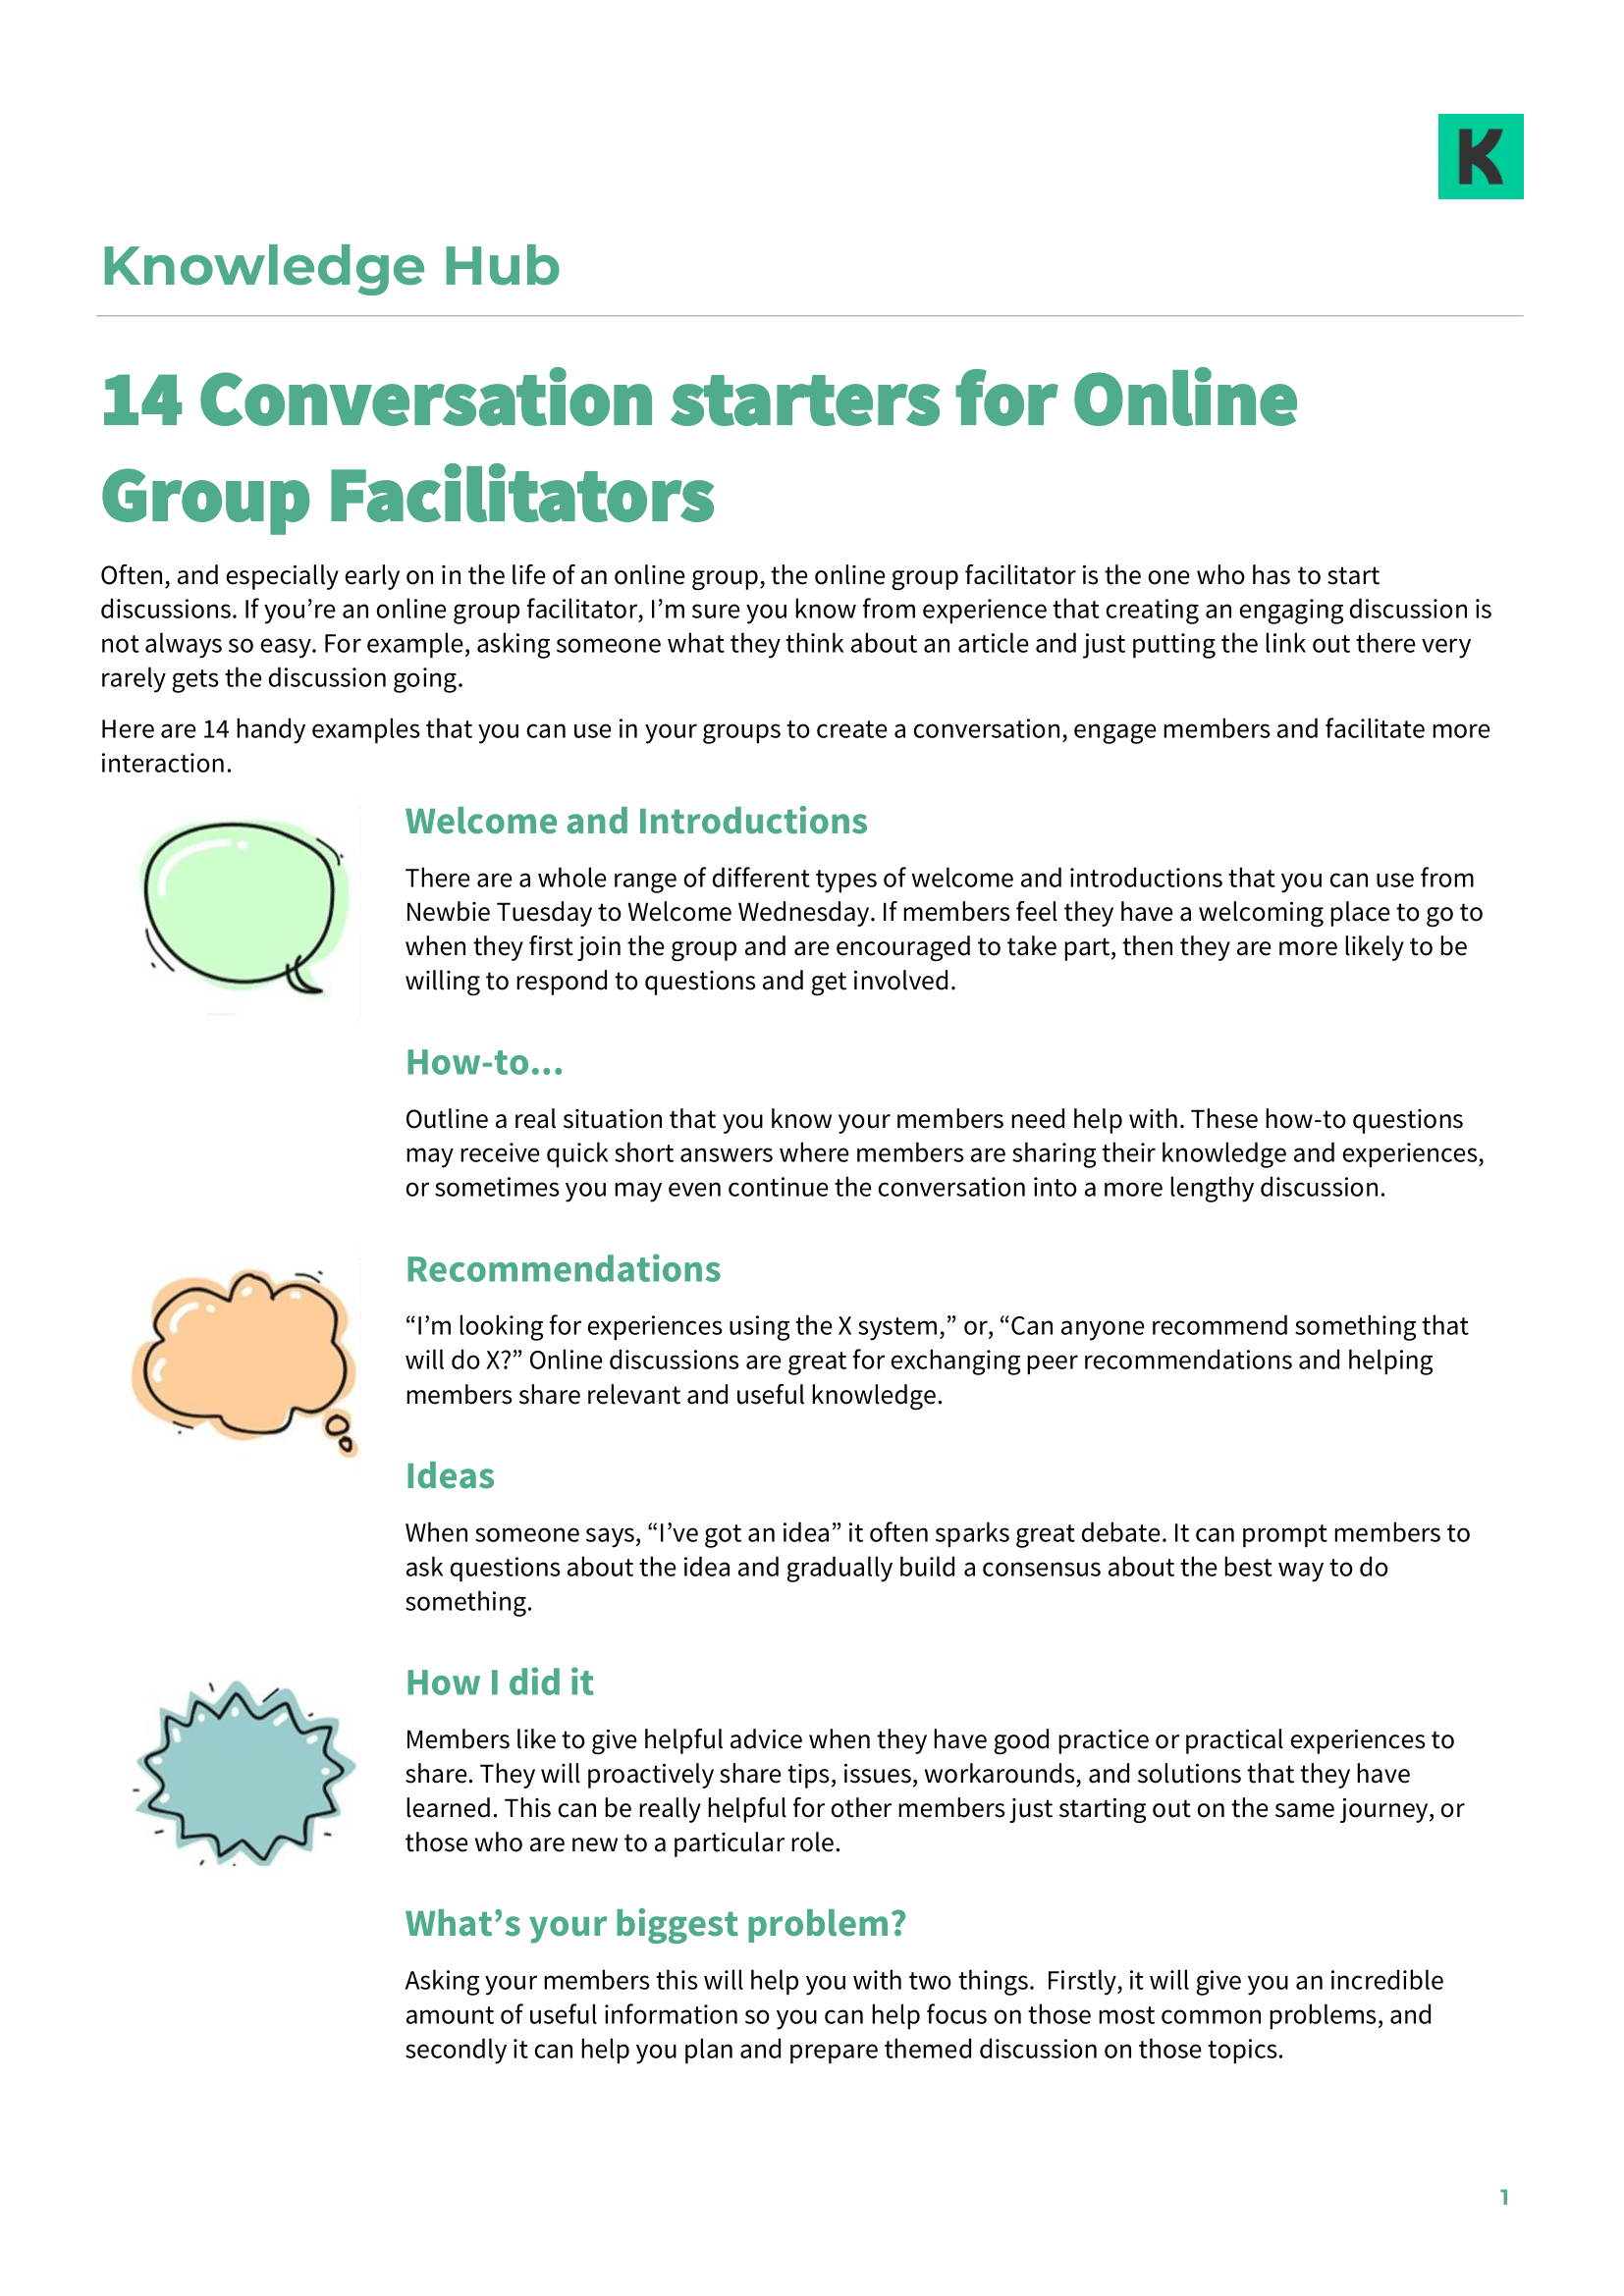 14 Conversation starters for Online Group Facilitators (part 1)